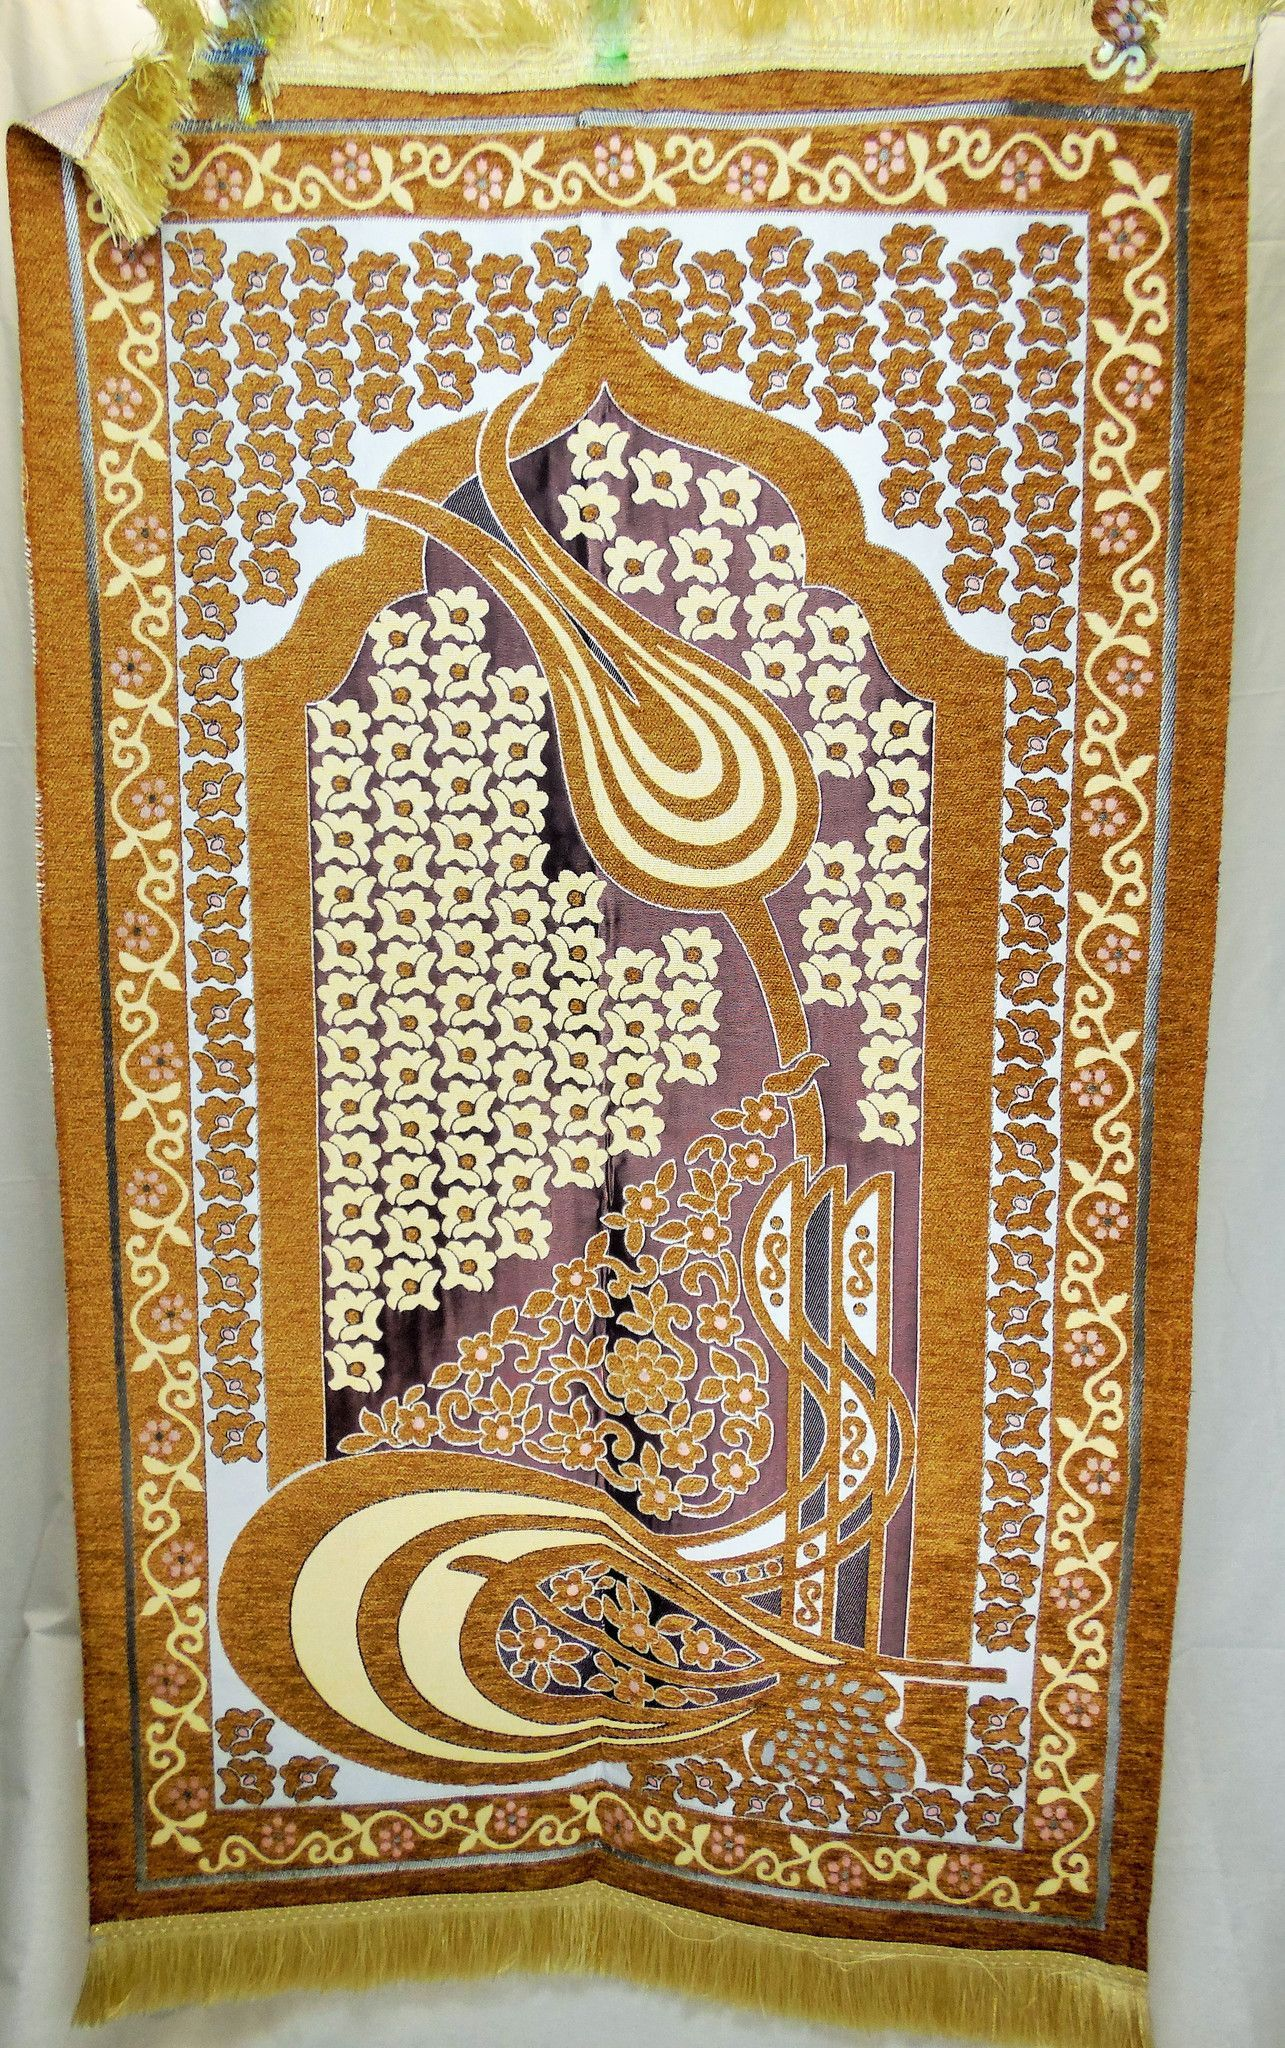 International Goods Depot Muslim Pray Rug Namaz Sajadah Mat Series Tughra Mustard Colored 27 X 45